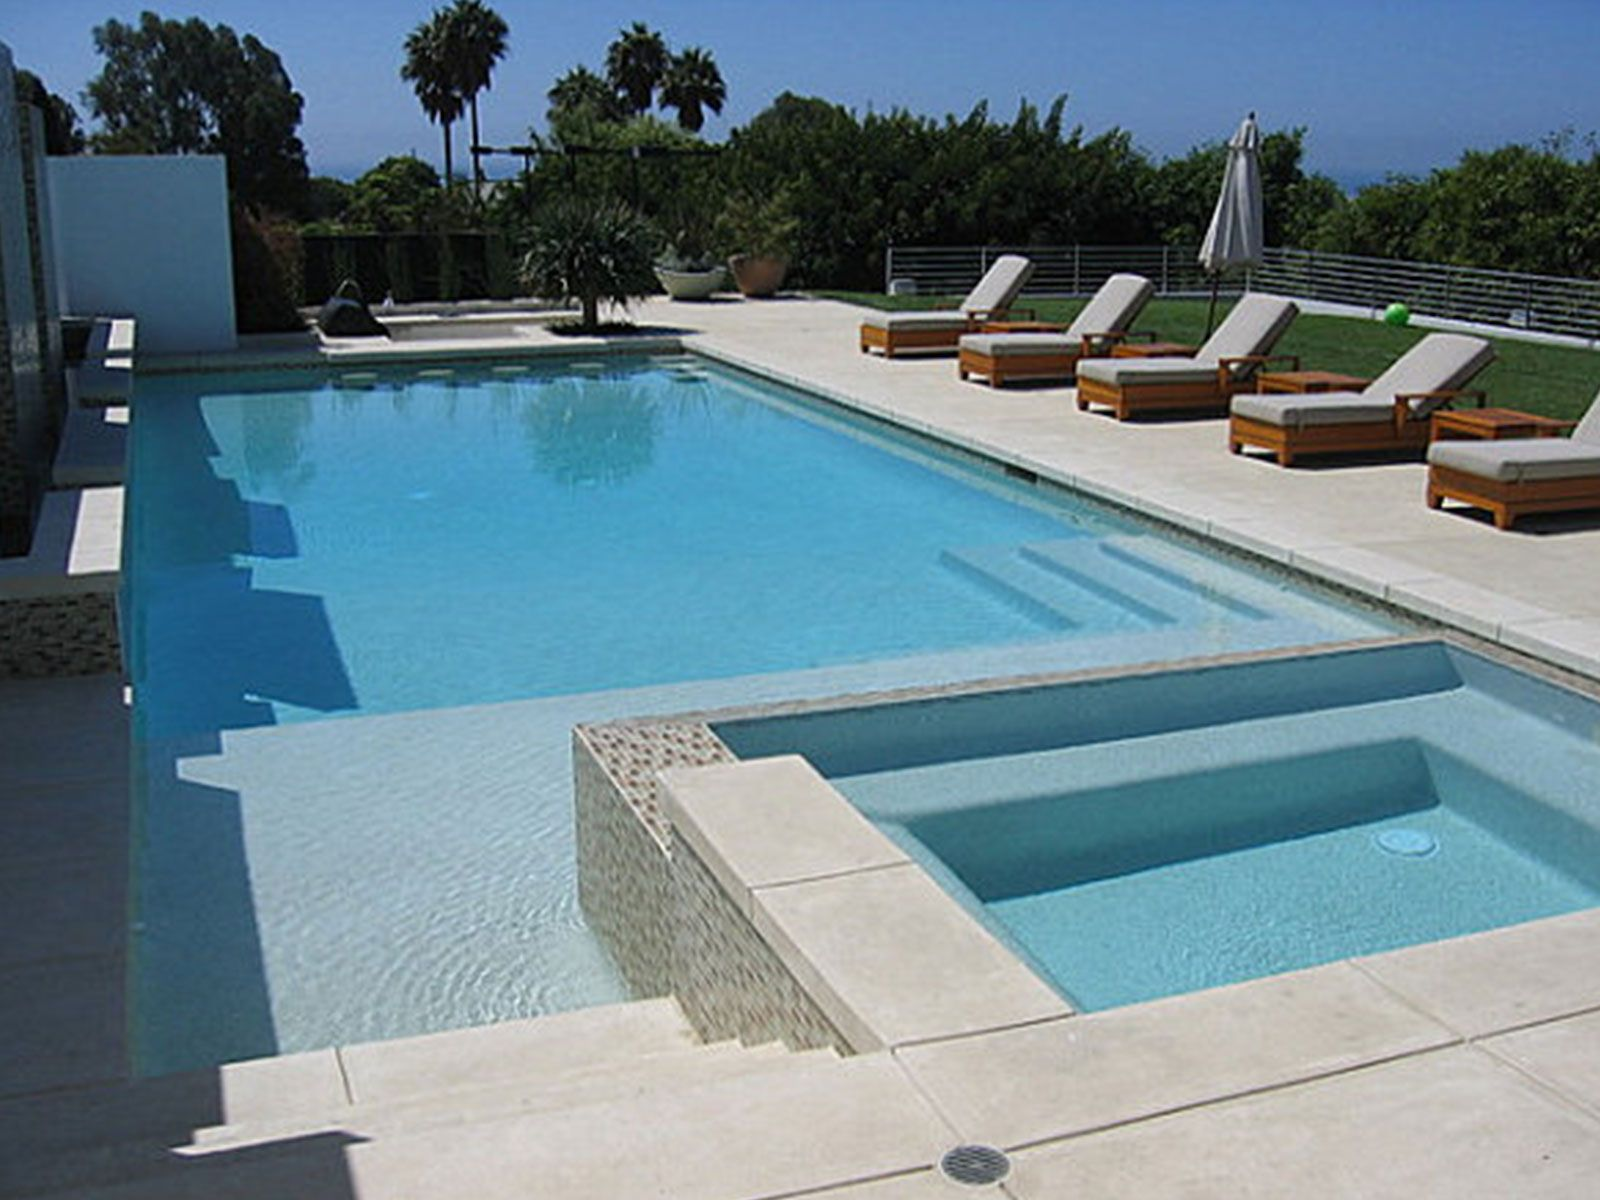 simple swimming pool design image modern creative swimming modern swimming pools and spas pool. Black Bedroom Furniture Sets. Home Design Ideas